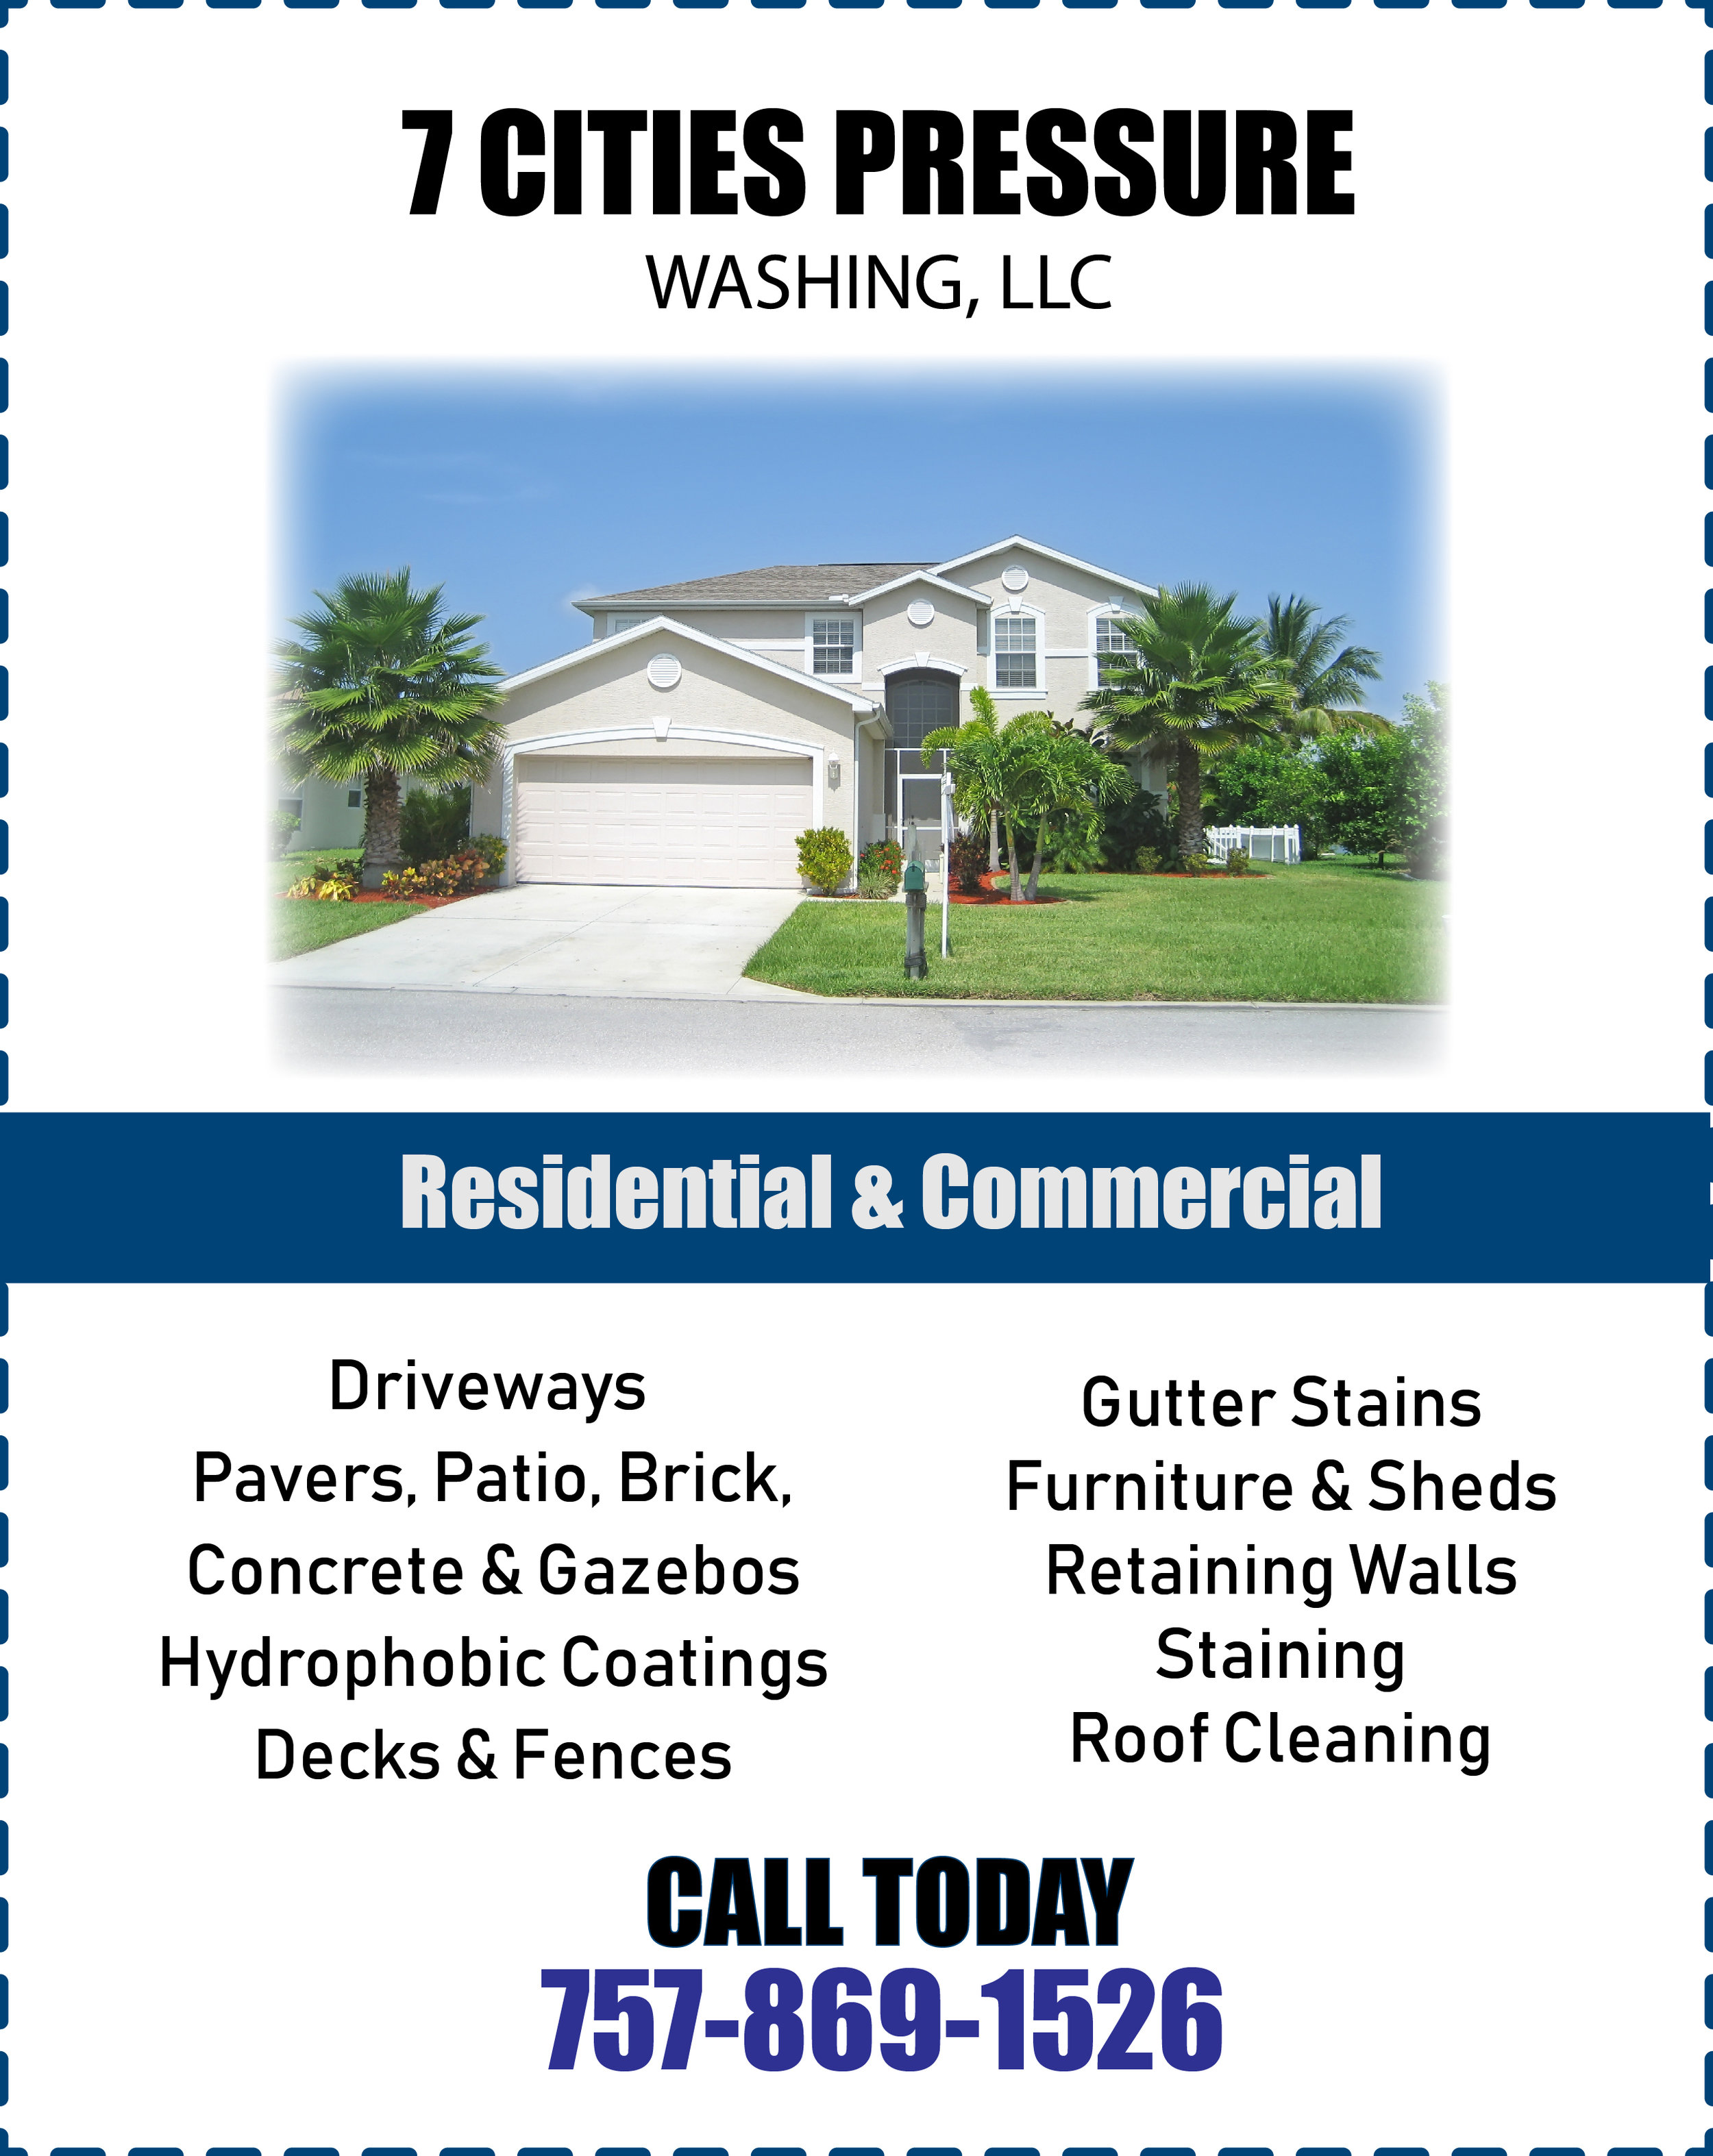 Marketing Flyer Corporate Commercial